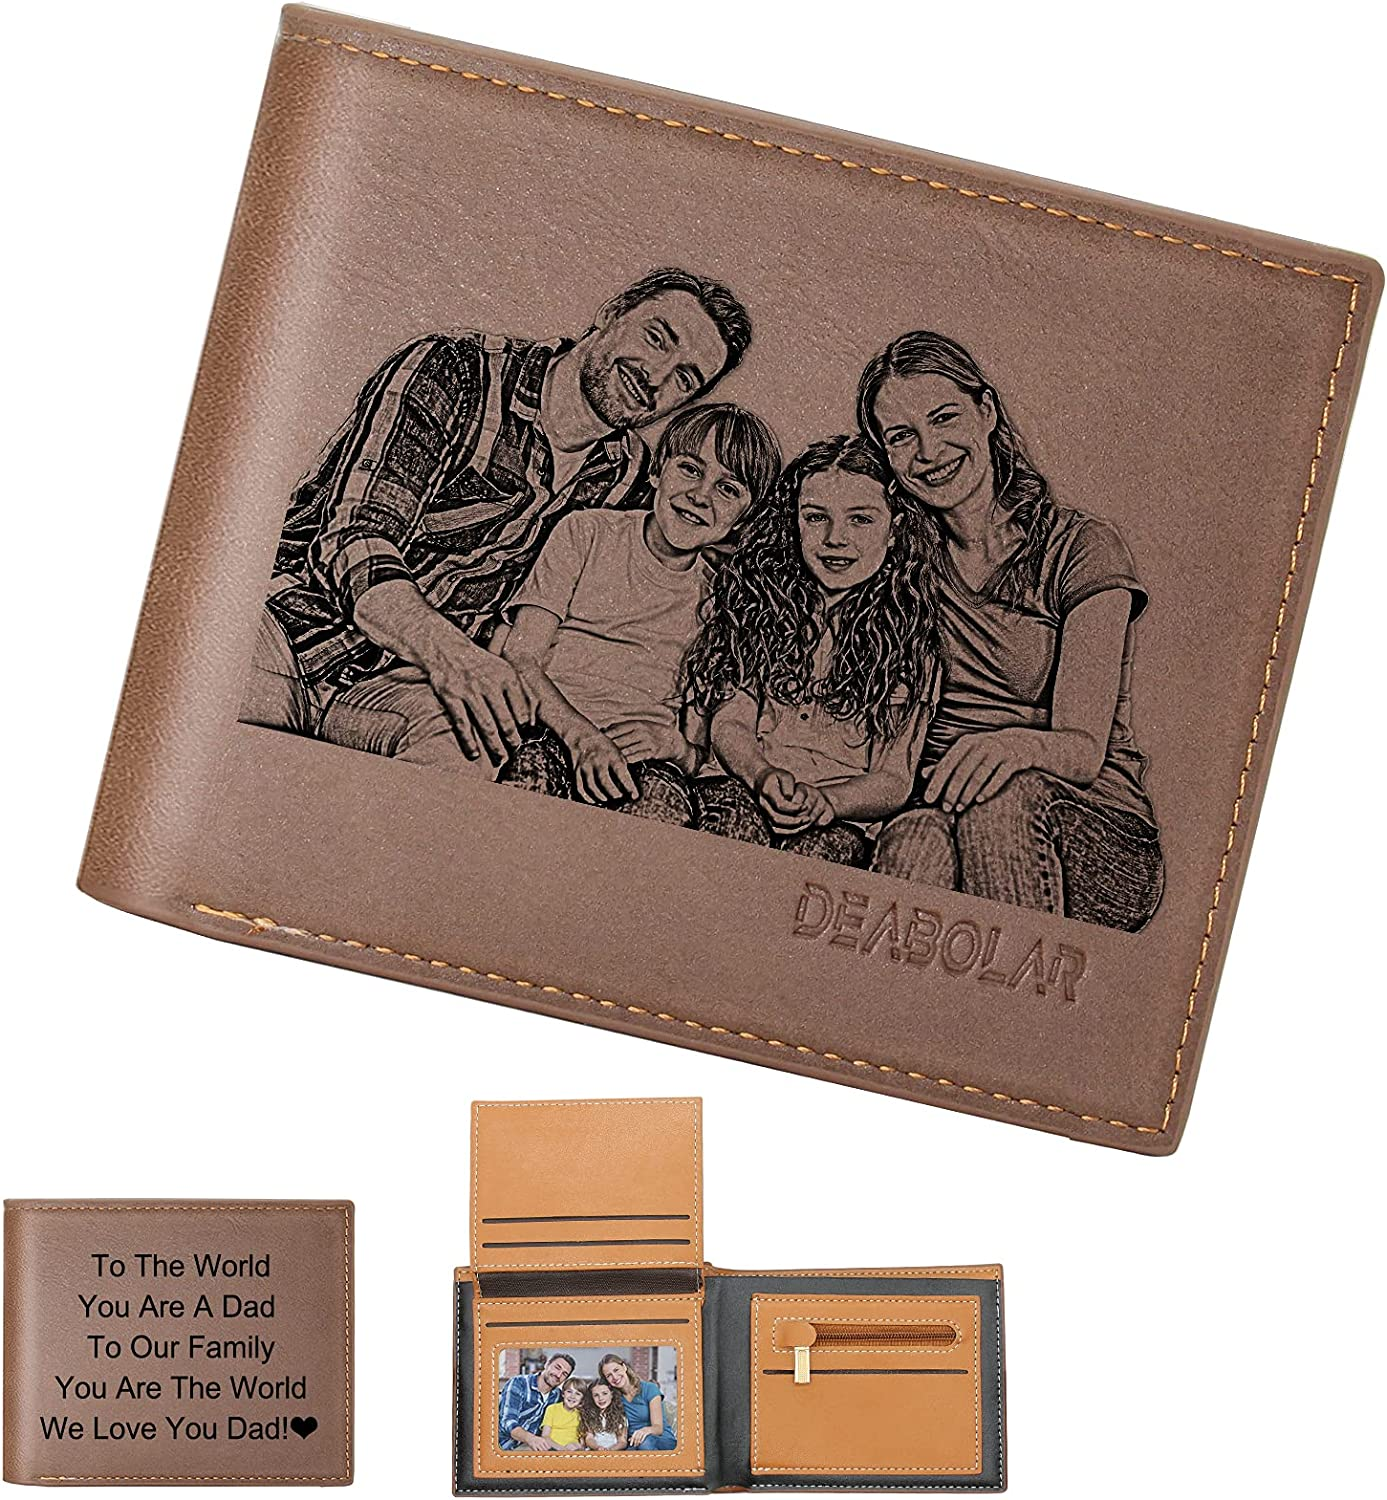 Personalized Wallet for Men with Picture Engraved, Custom Trifold Photo Wallets for Dad Husband Son Father's Day